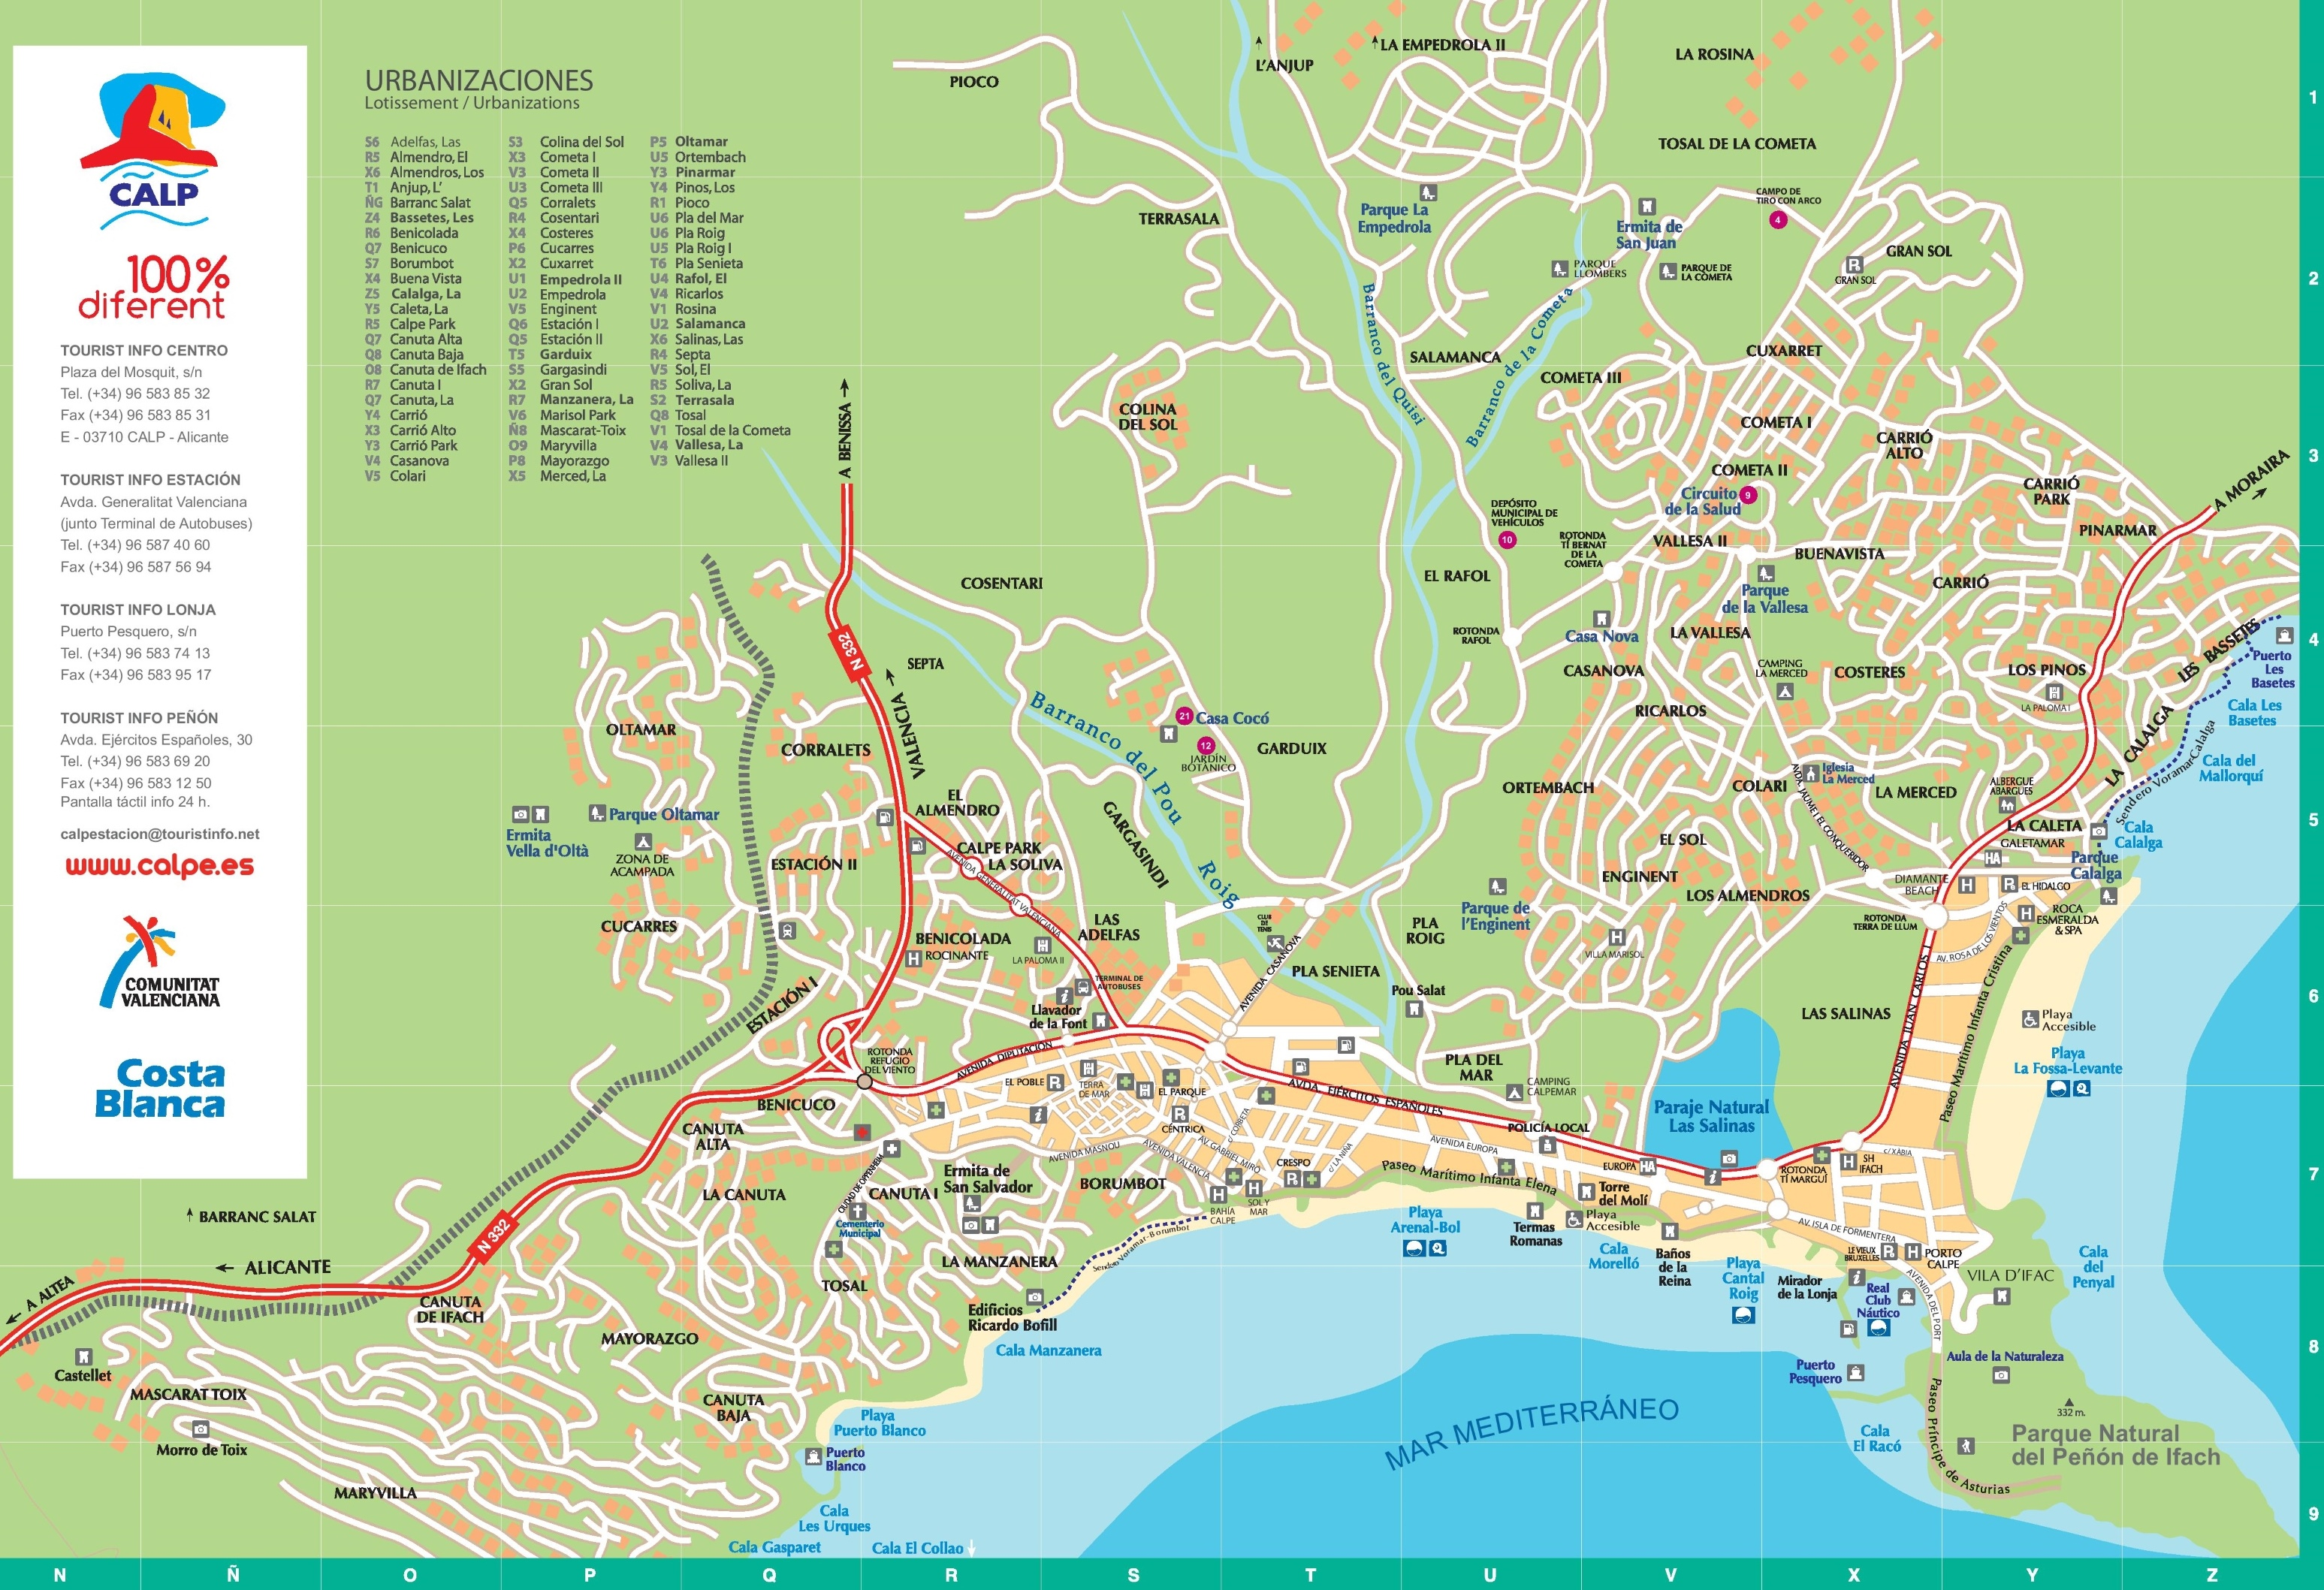 Calp tourist map